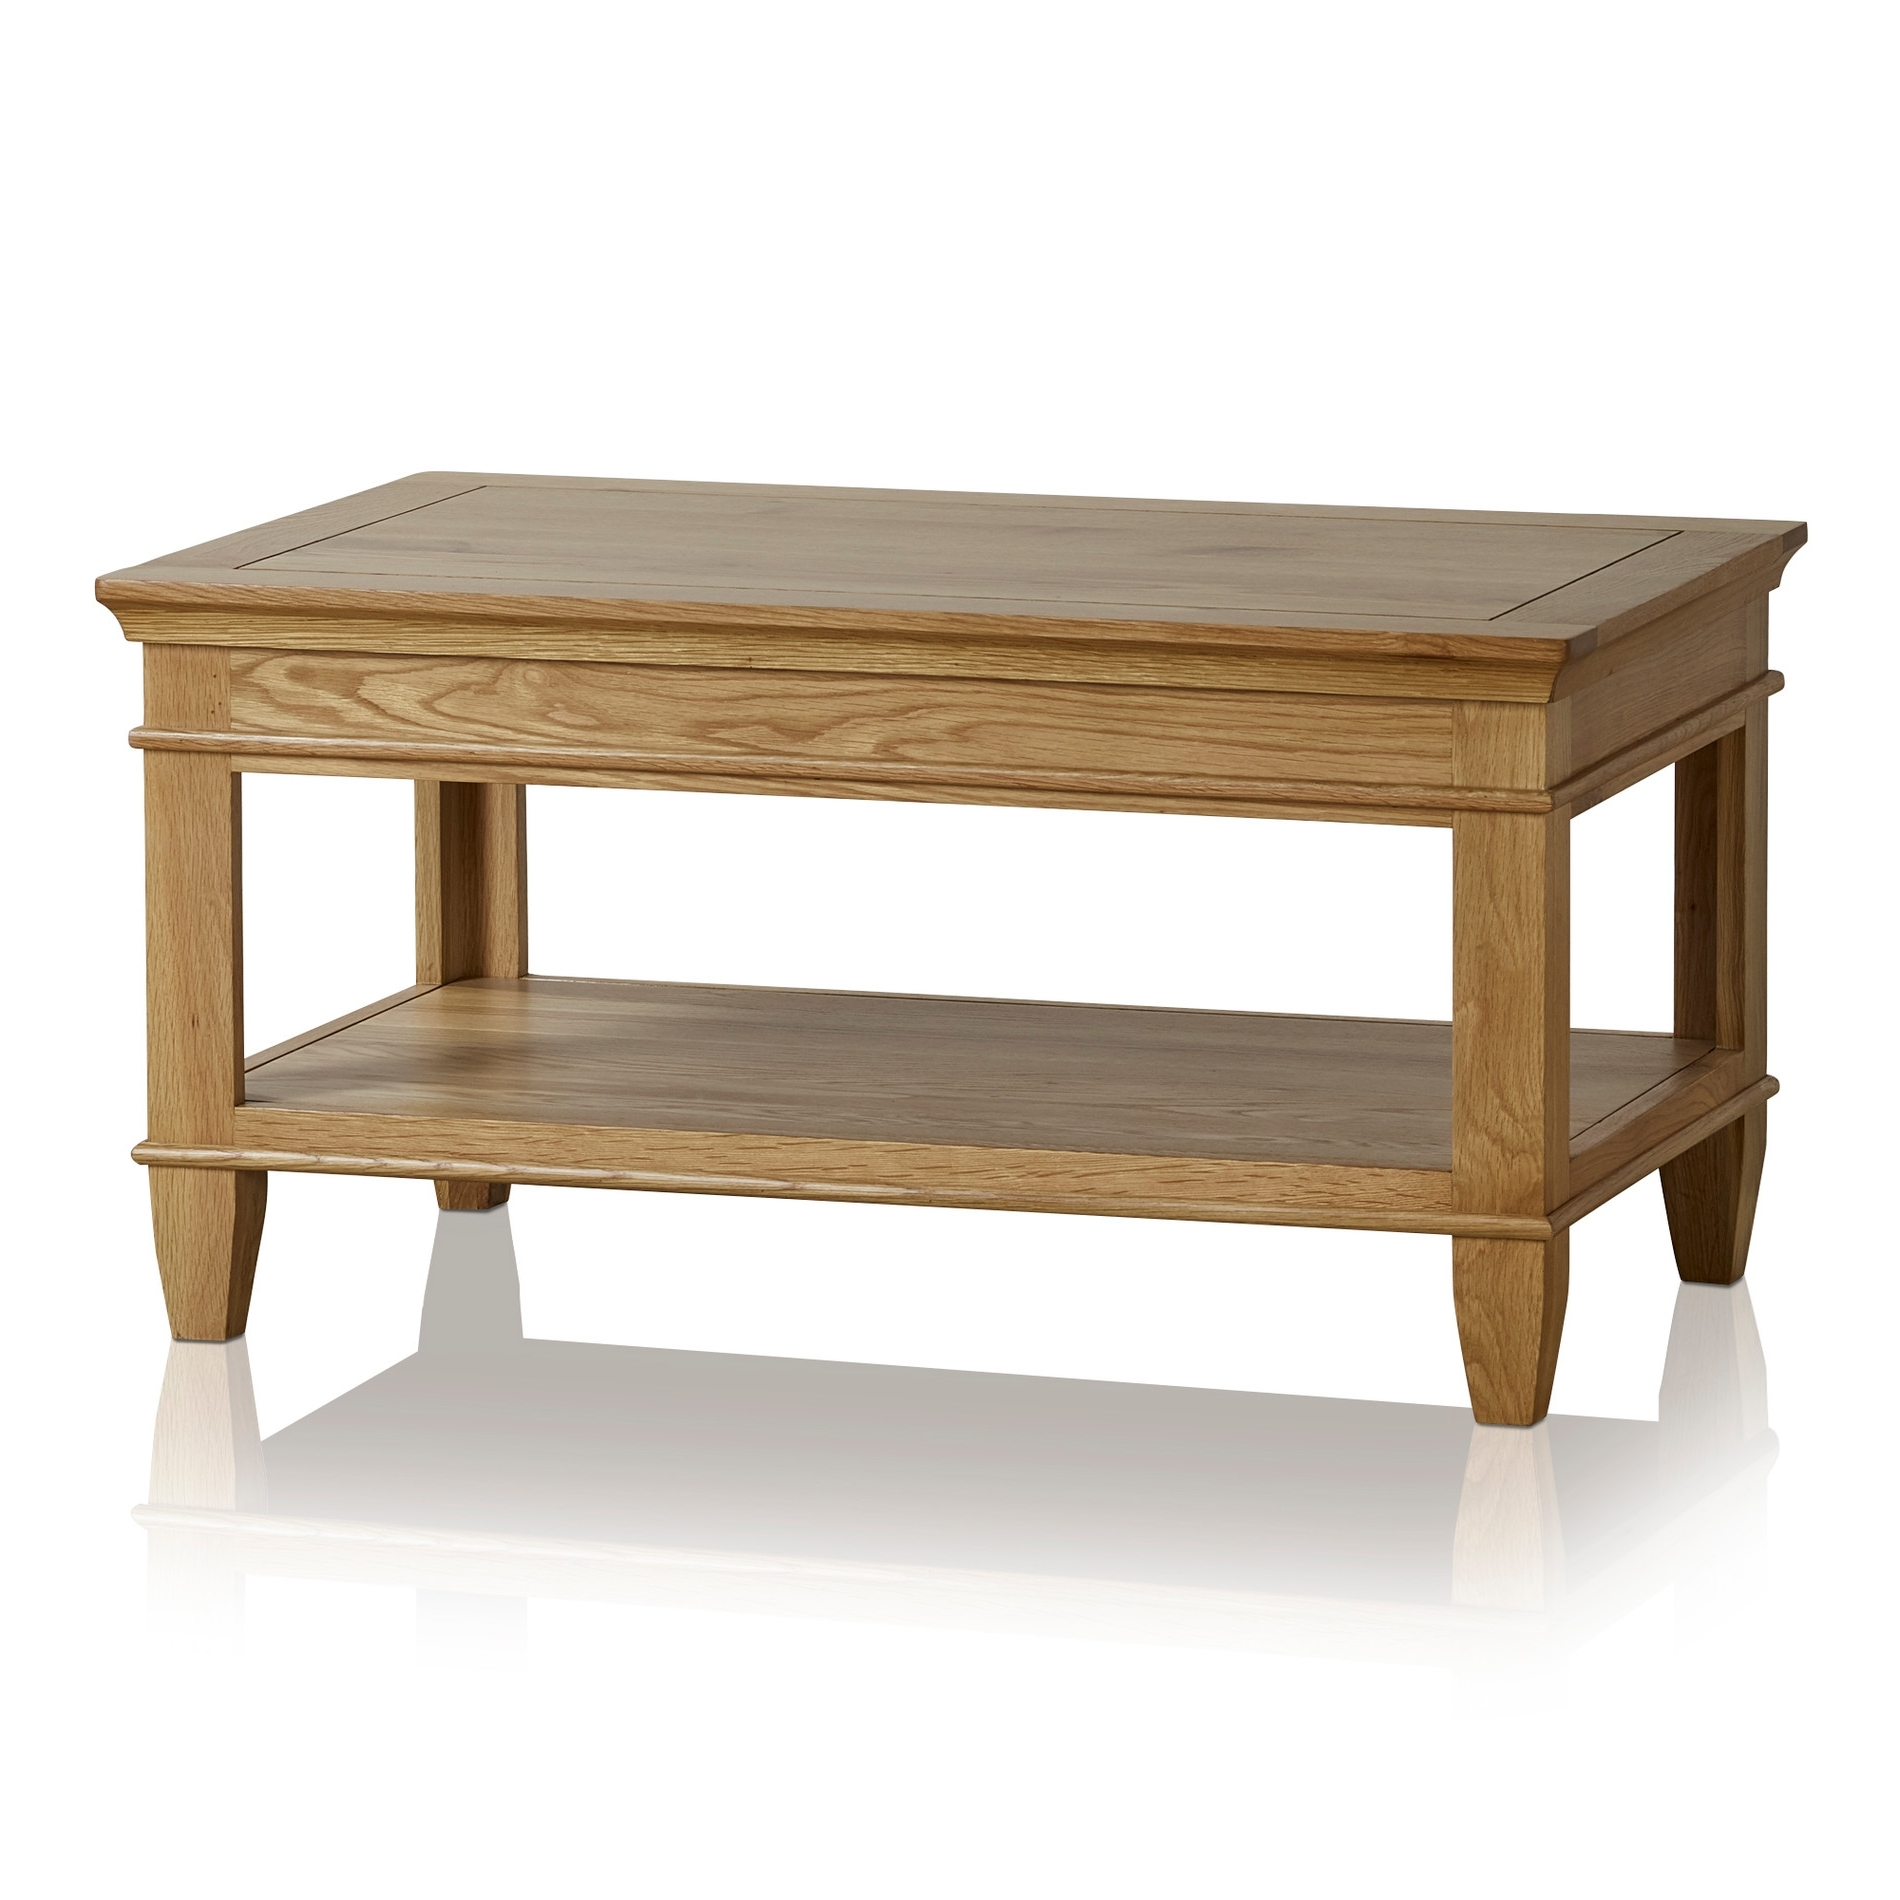 Oak Furniture Land In Fashionable Natural 2 Drawer Shutter Coffee Tables (View 17 of 20)